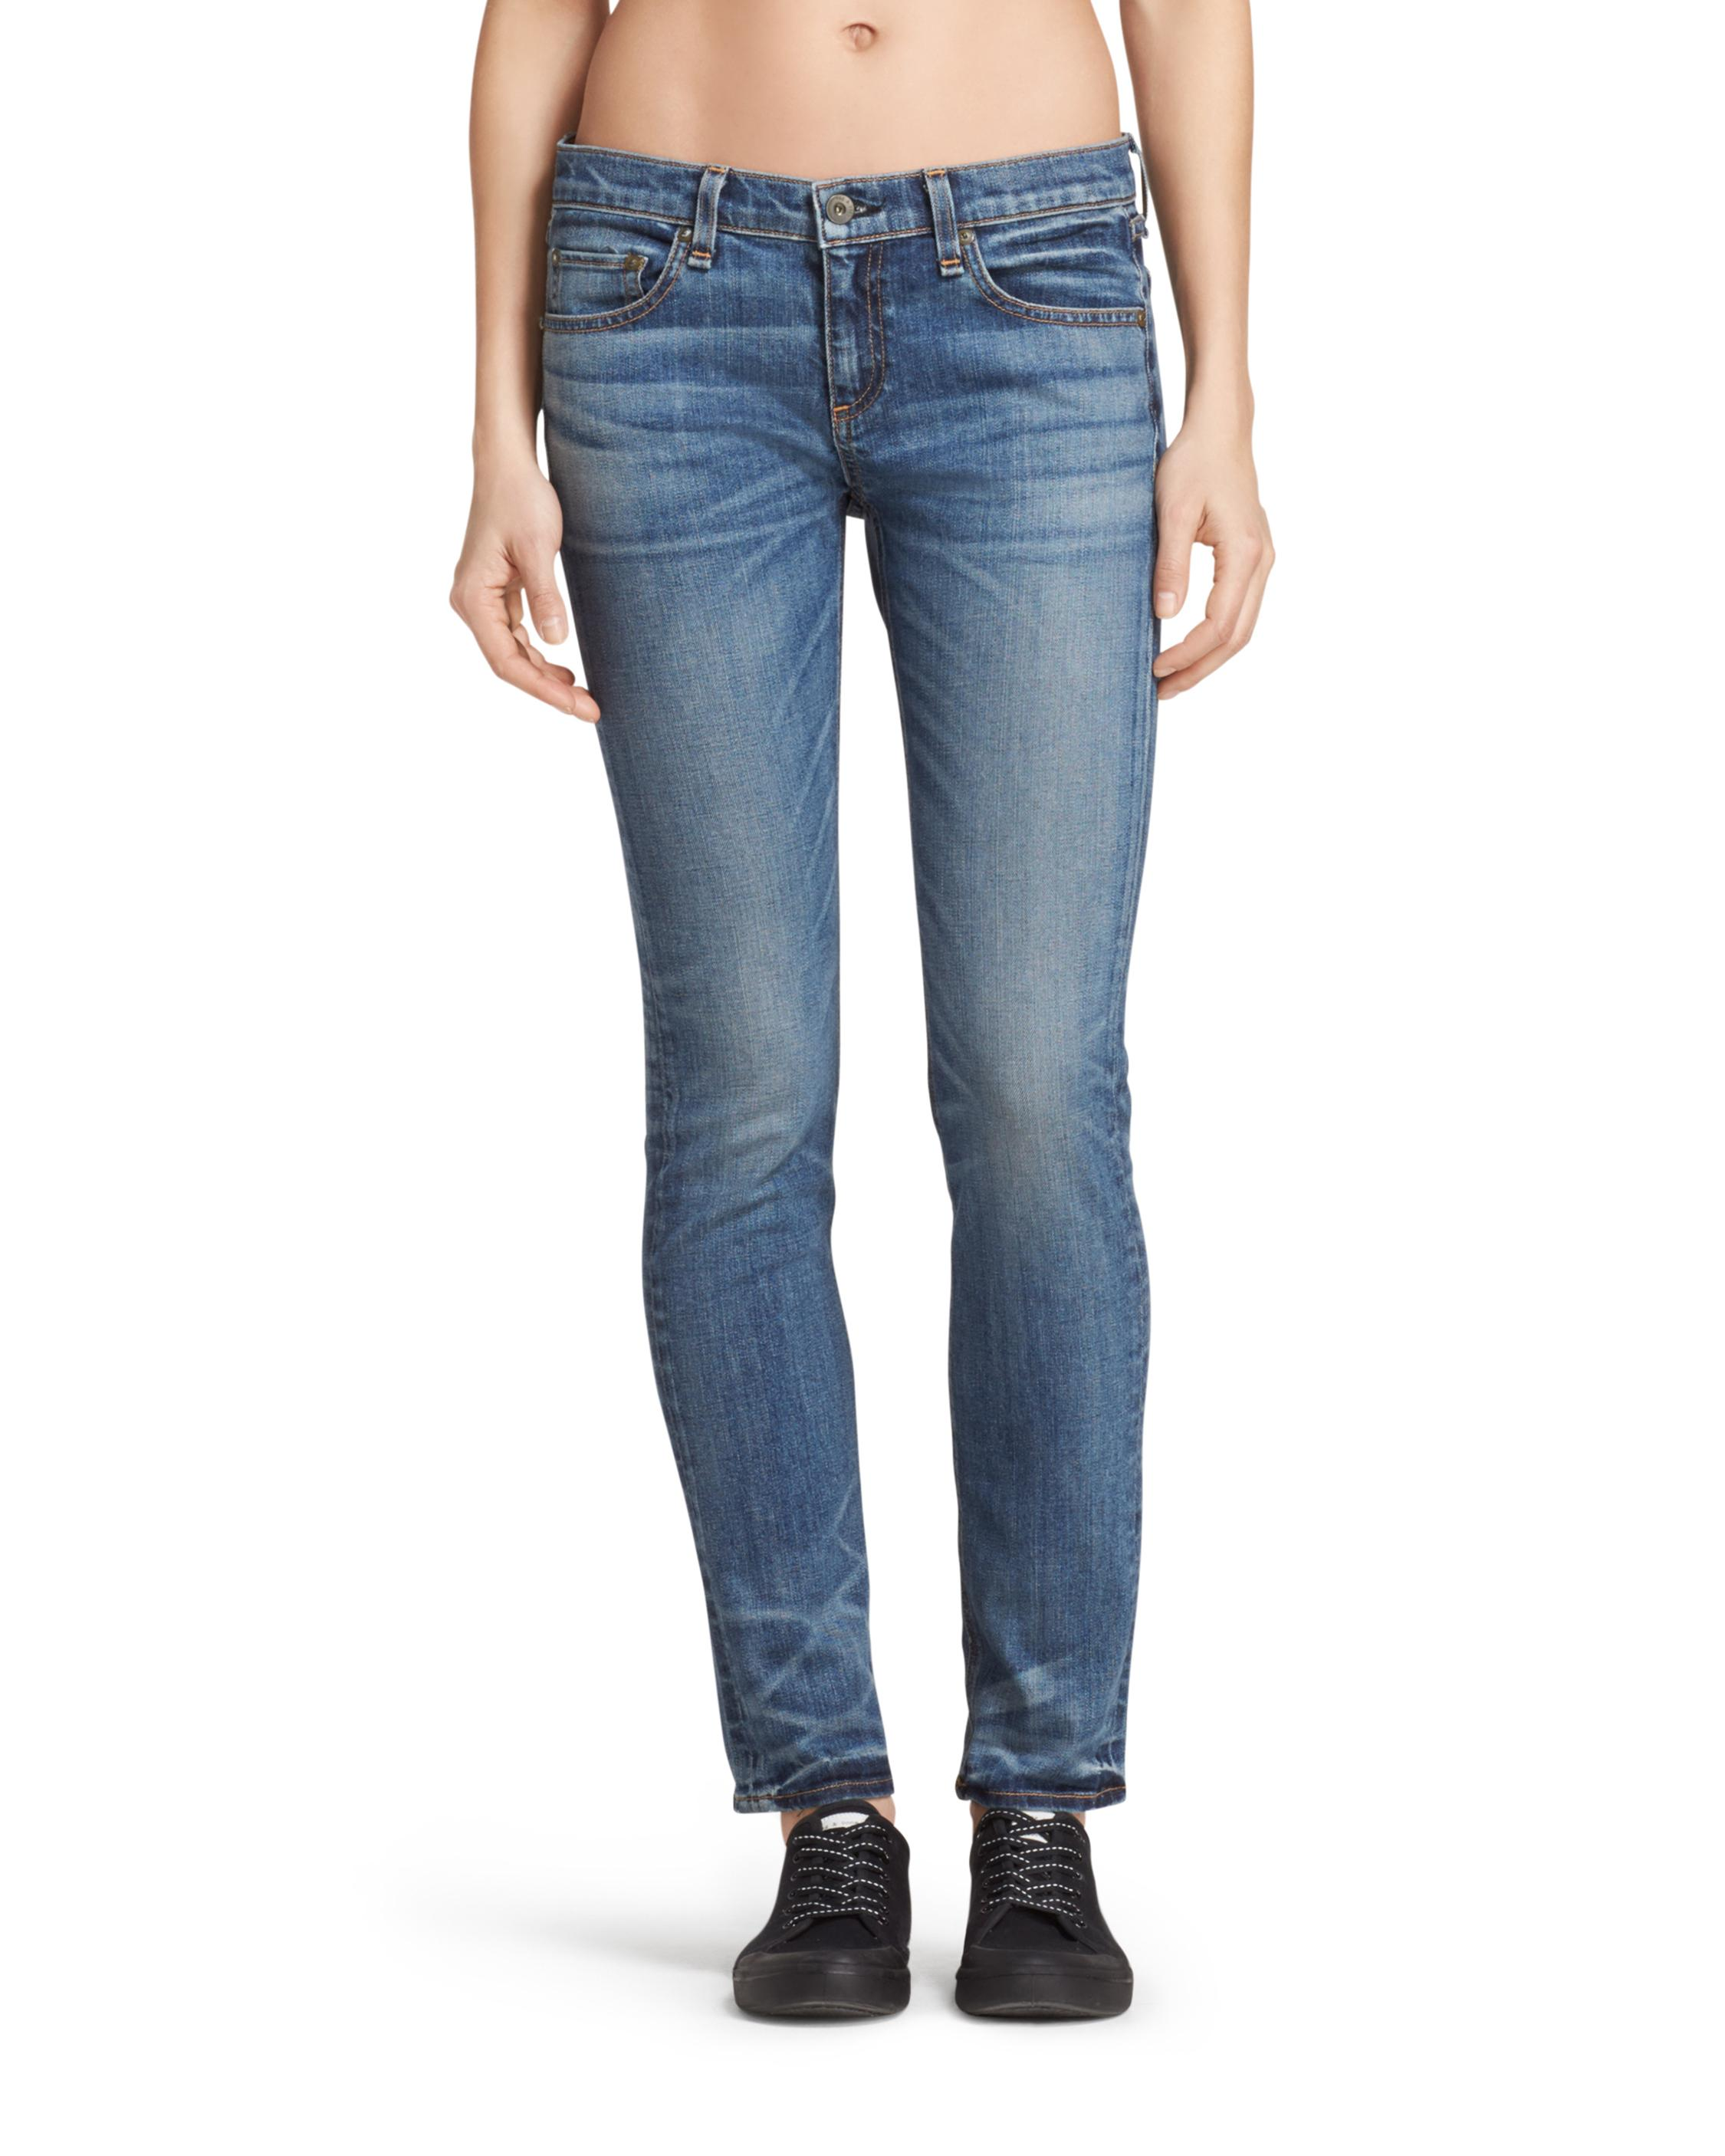 slim-fit jeans - Blue Rag & Bone Largest Supplier For Sale Buy Cheap In China Outlet Store Locations Best Prices Cheap Price pUMqD8N